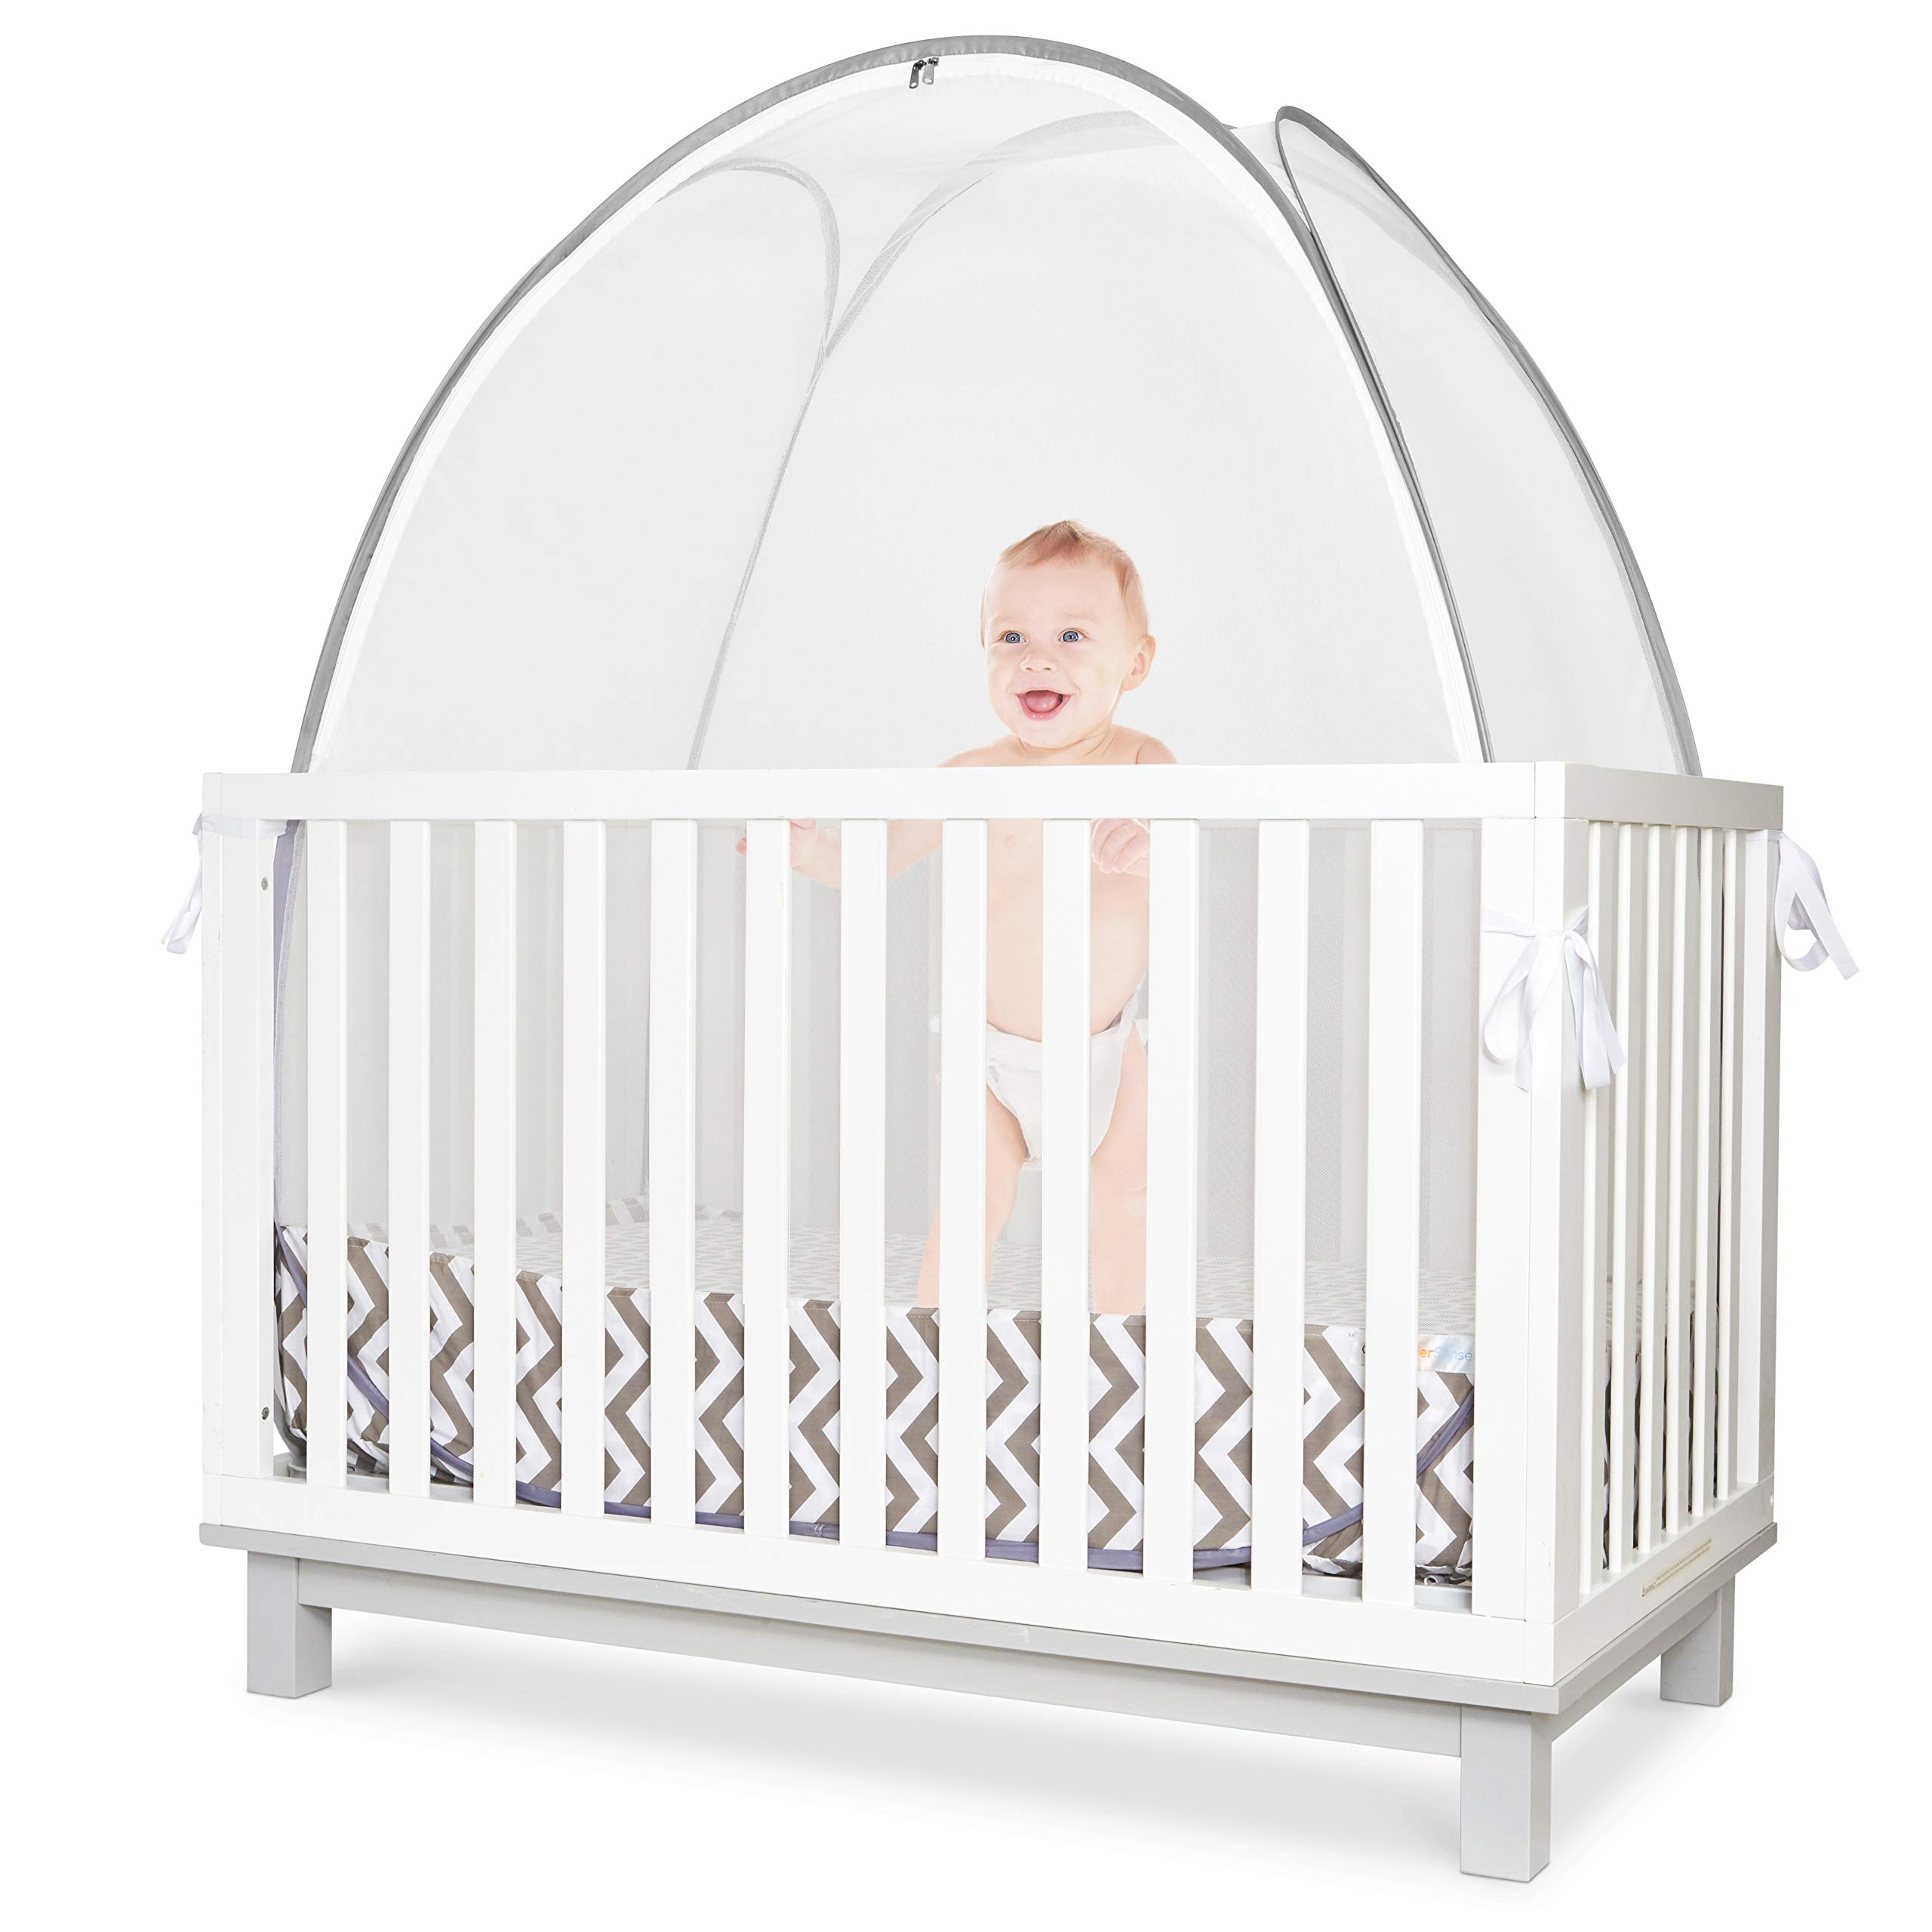 KinderSense - Baby Crib Safety Tent   Premium See Through Mesh Sturdy Pop Up Canopy Cover Mosquito Net   Prevent & Protect Infant Child from Climbing Out of Bed & from Insects Bugs   CPSC Tested Safe